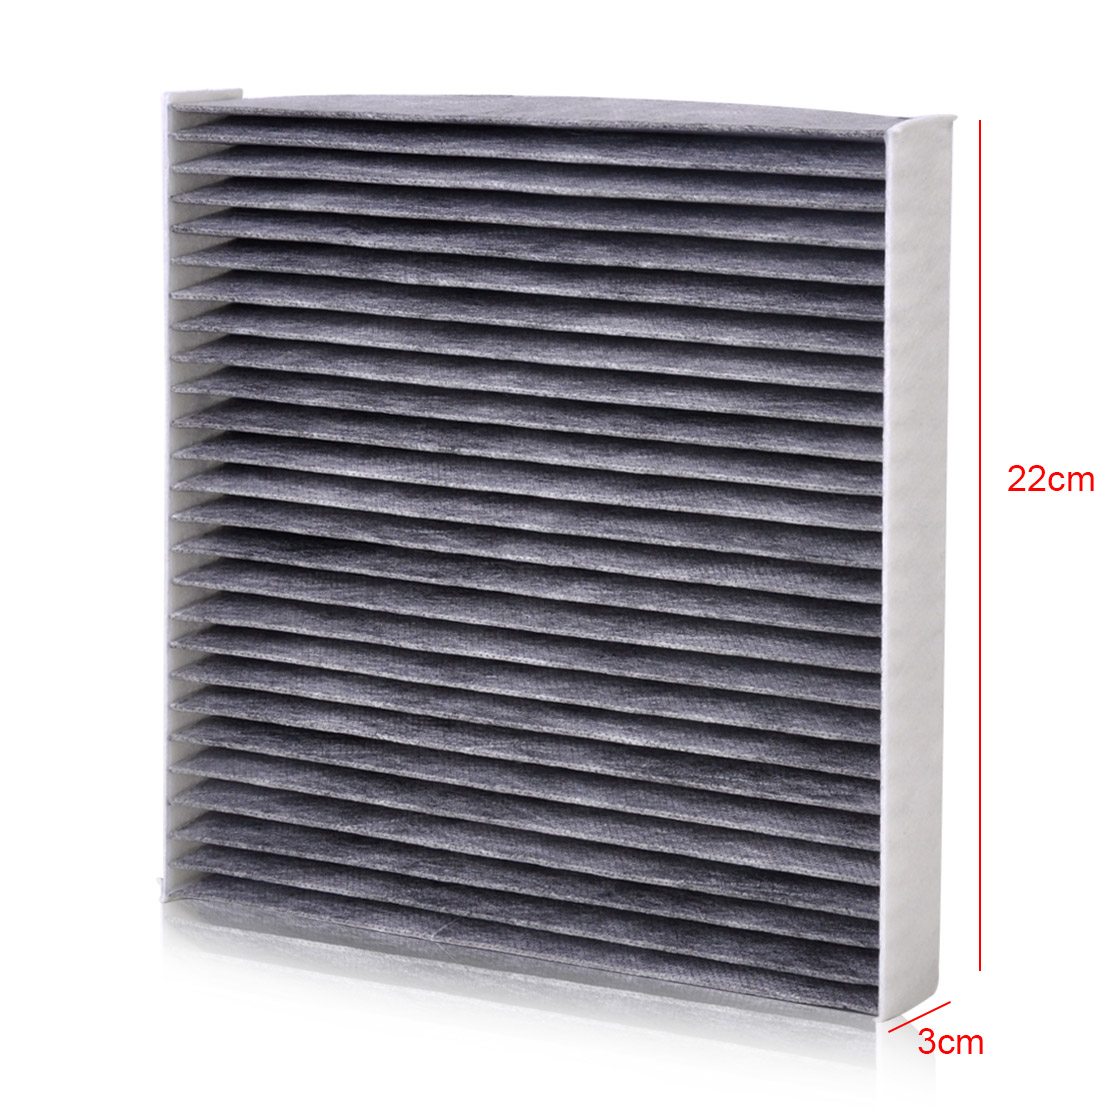 Gray Cabin Air Filter For Acura MDX RL TL TSX Honda Accord